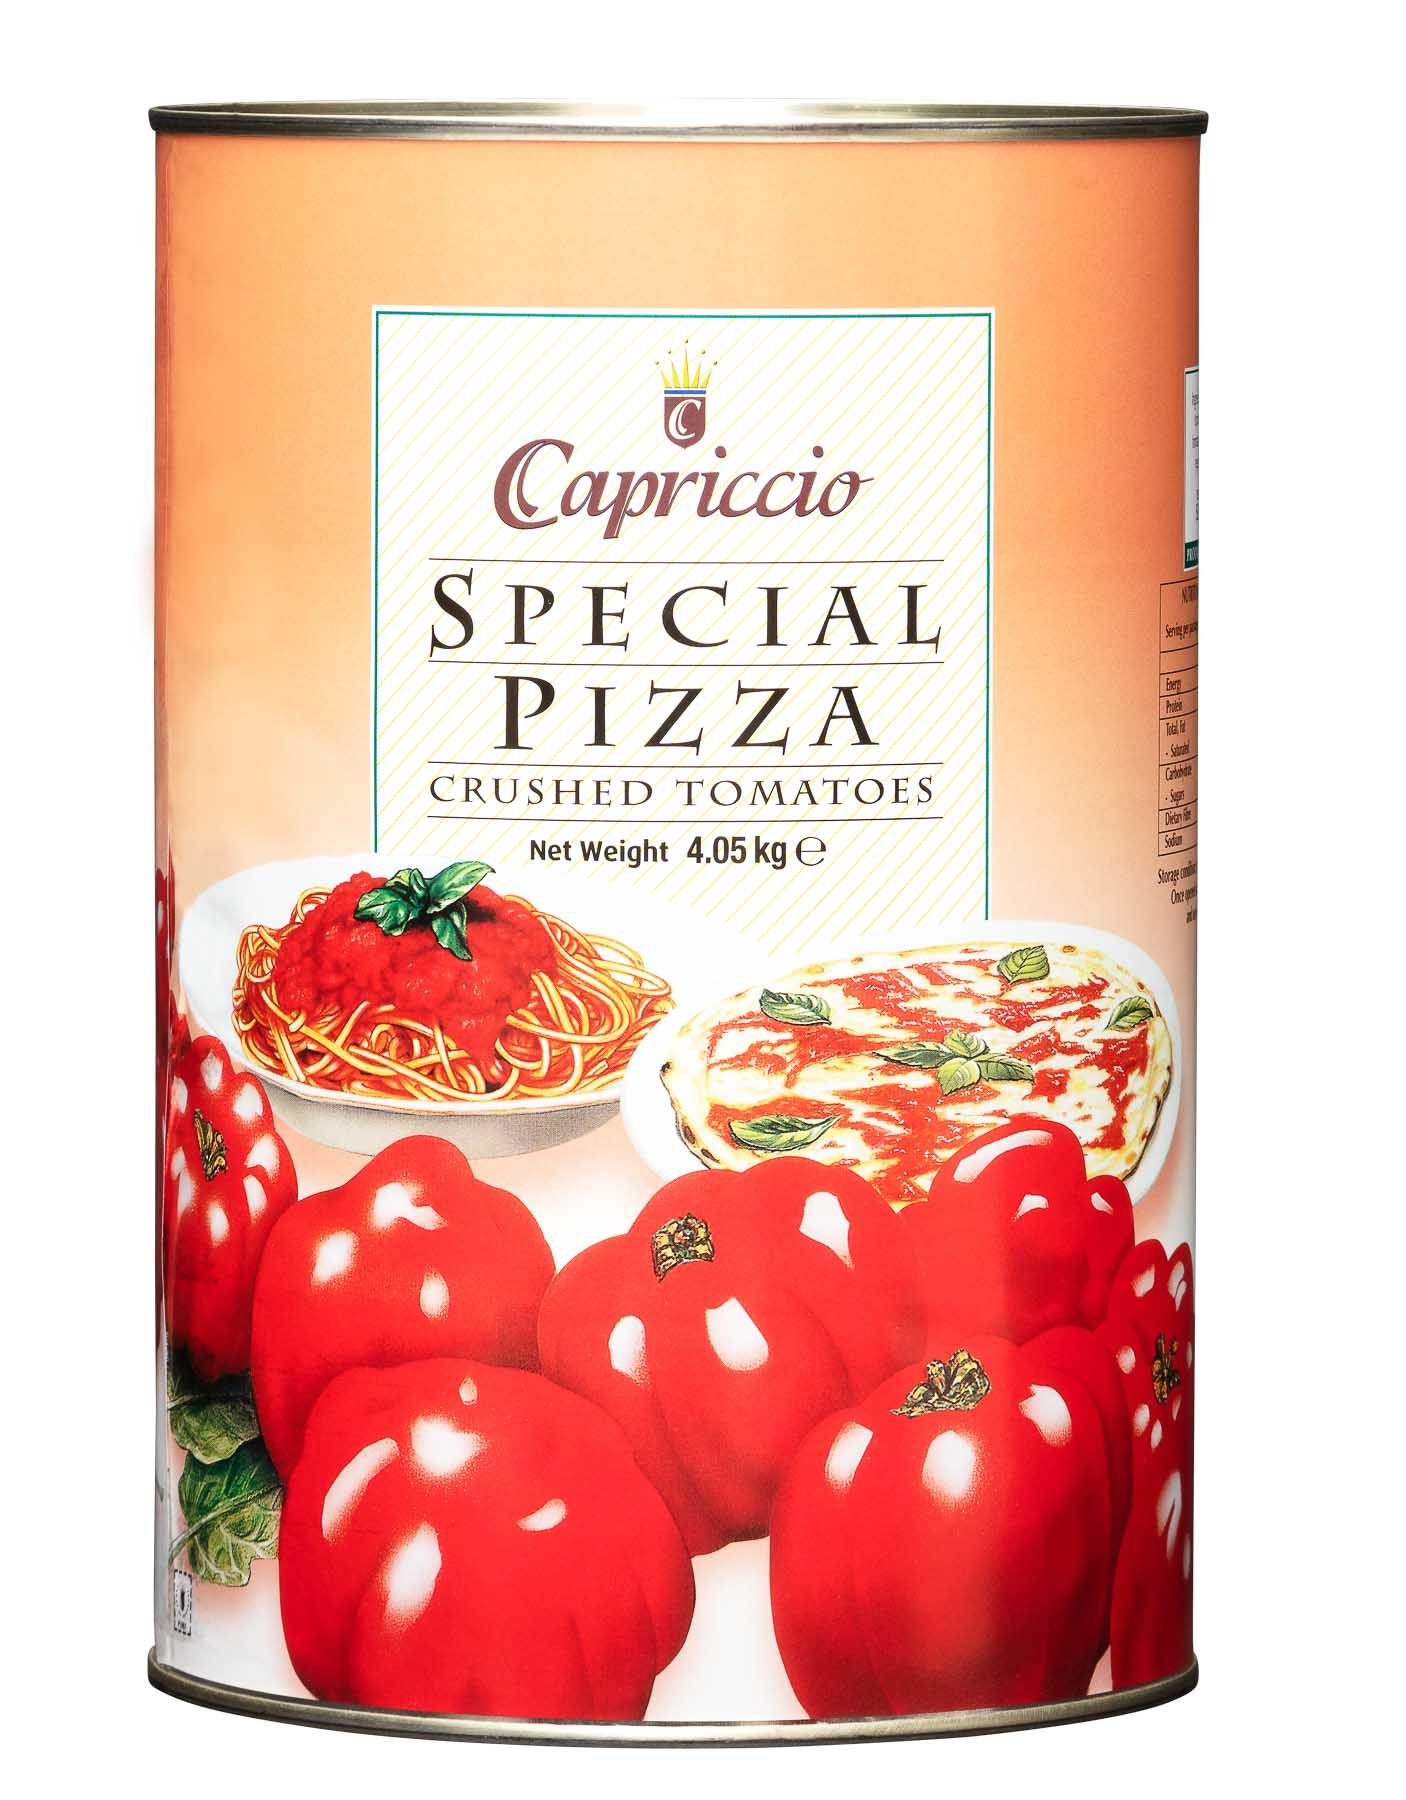 Special Pizza Crushed Tomatoes 4.05KG - Product Photography sample